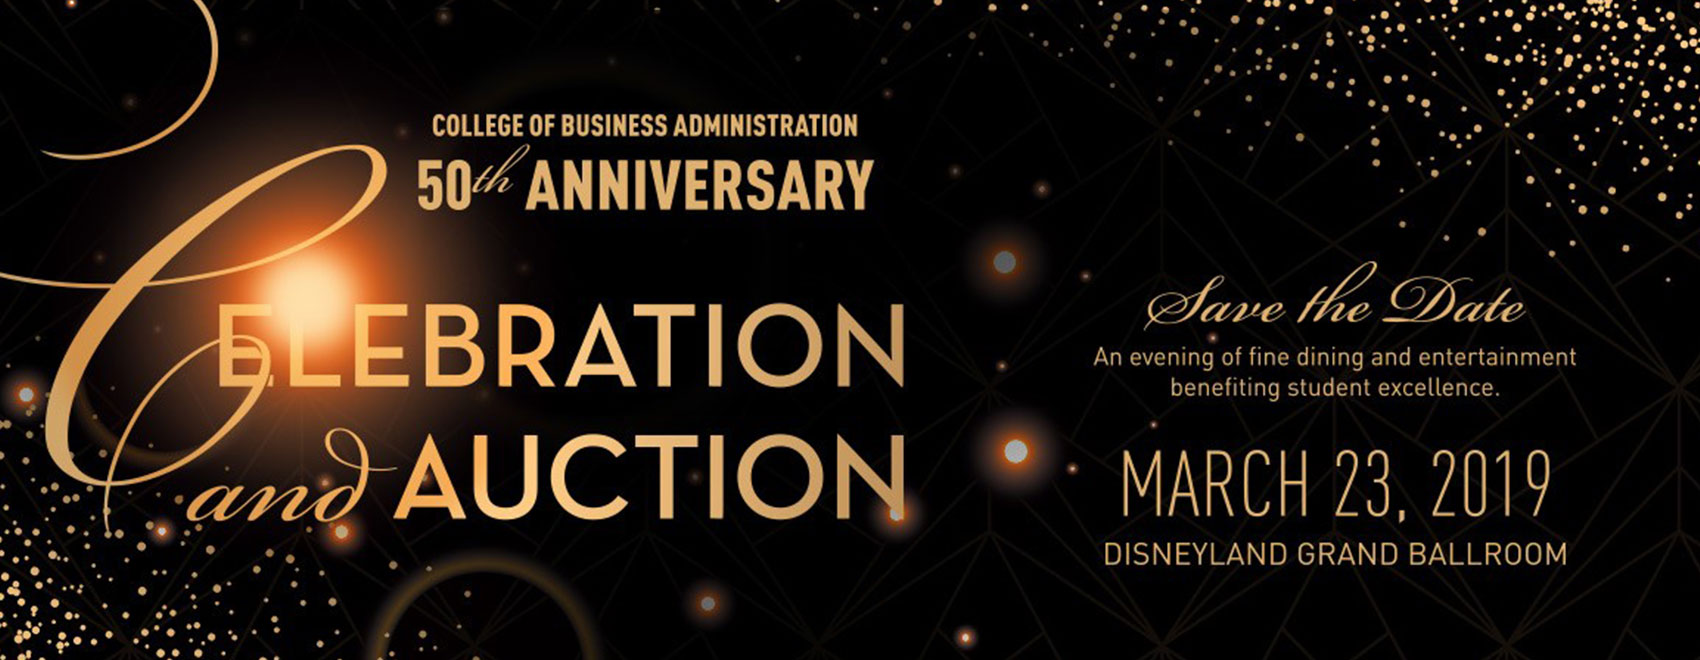 50th Gala event flier announcing March 23 as date and Disney Grand Ballroom as location